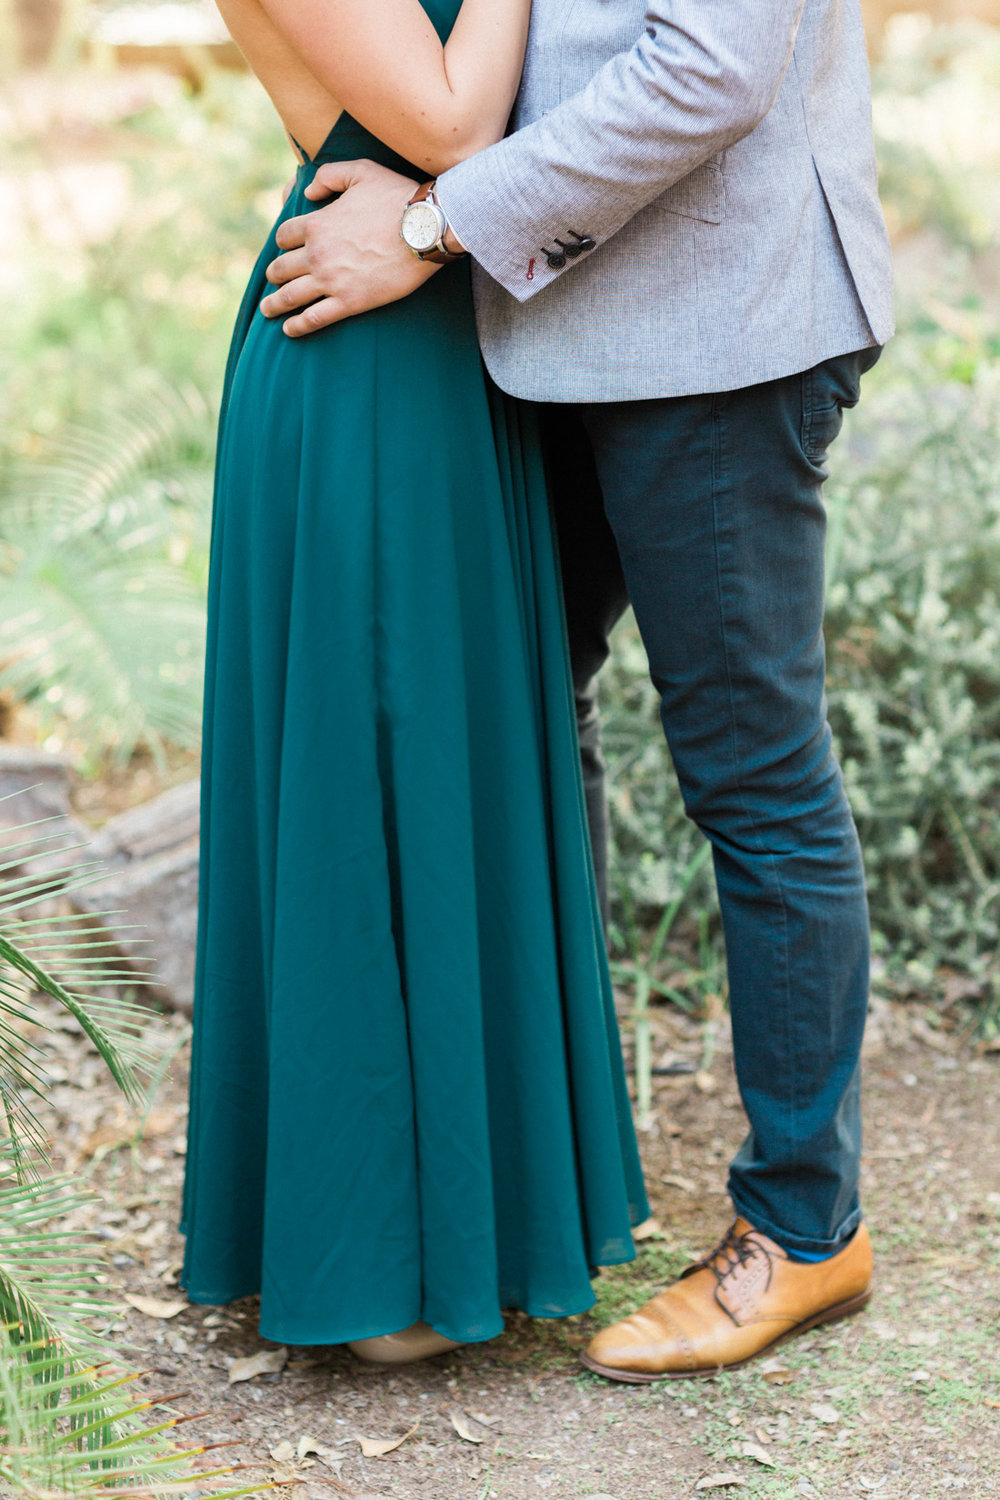 green-teal-dress.jpg